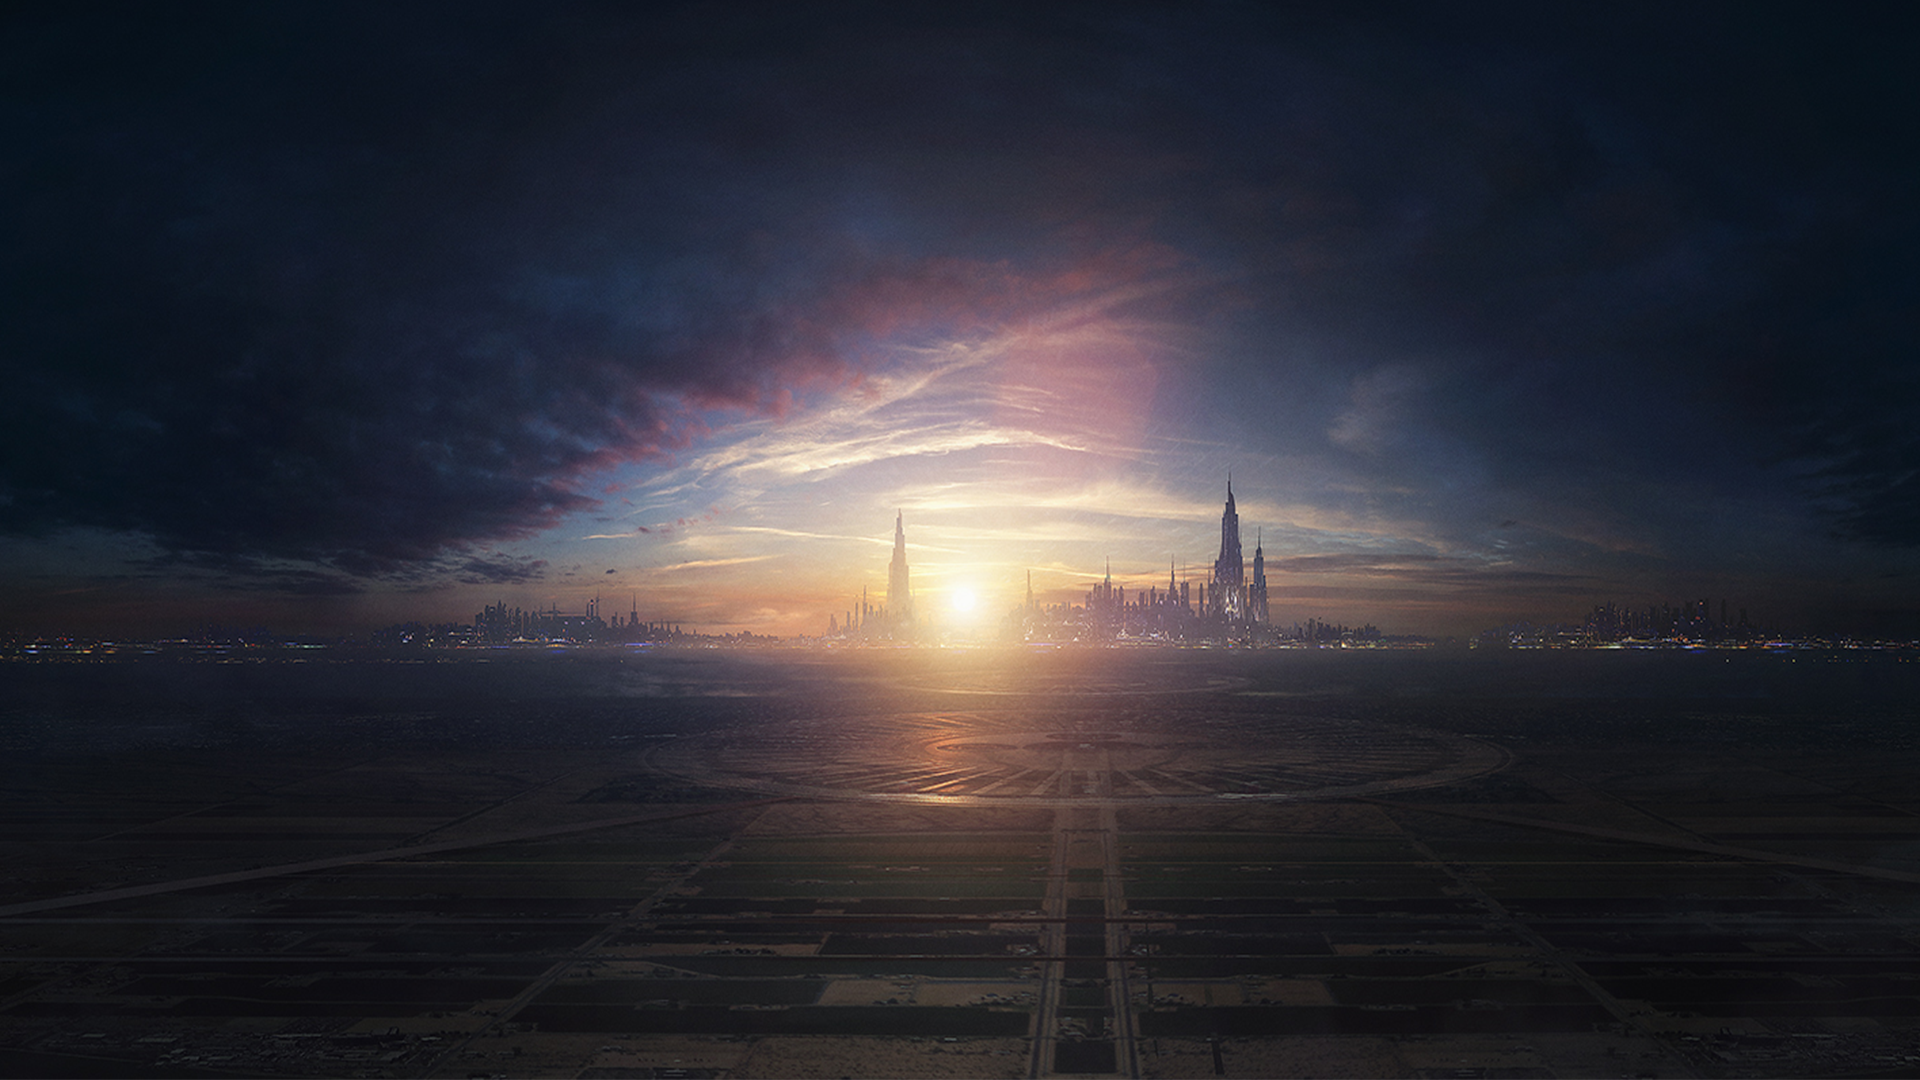 Sci Fi - Landscape  City Planet Sci Fi Manipulation Wallpaper